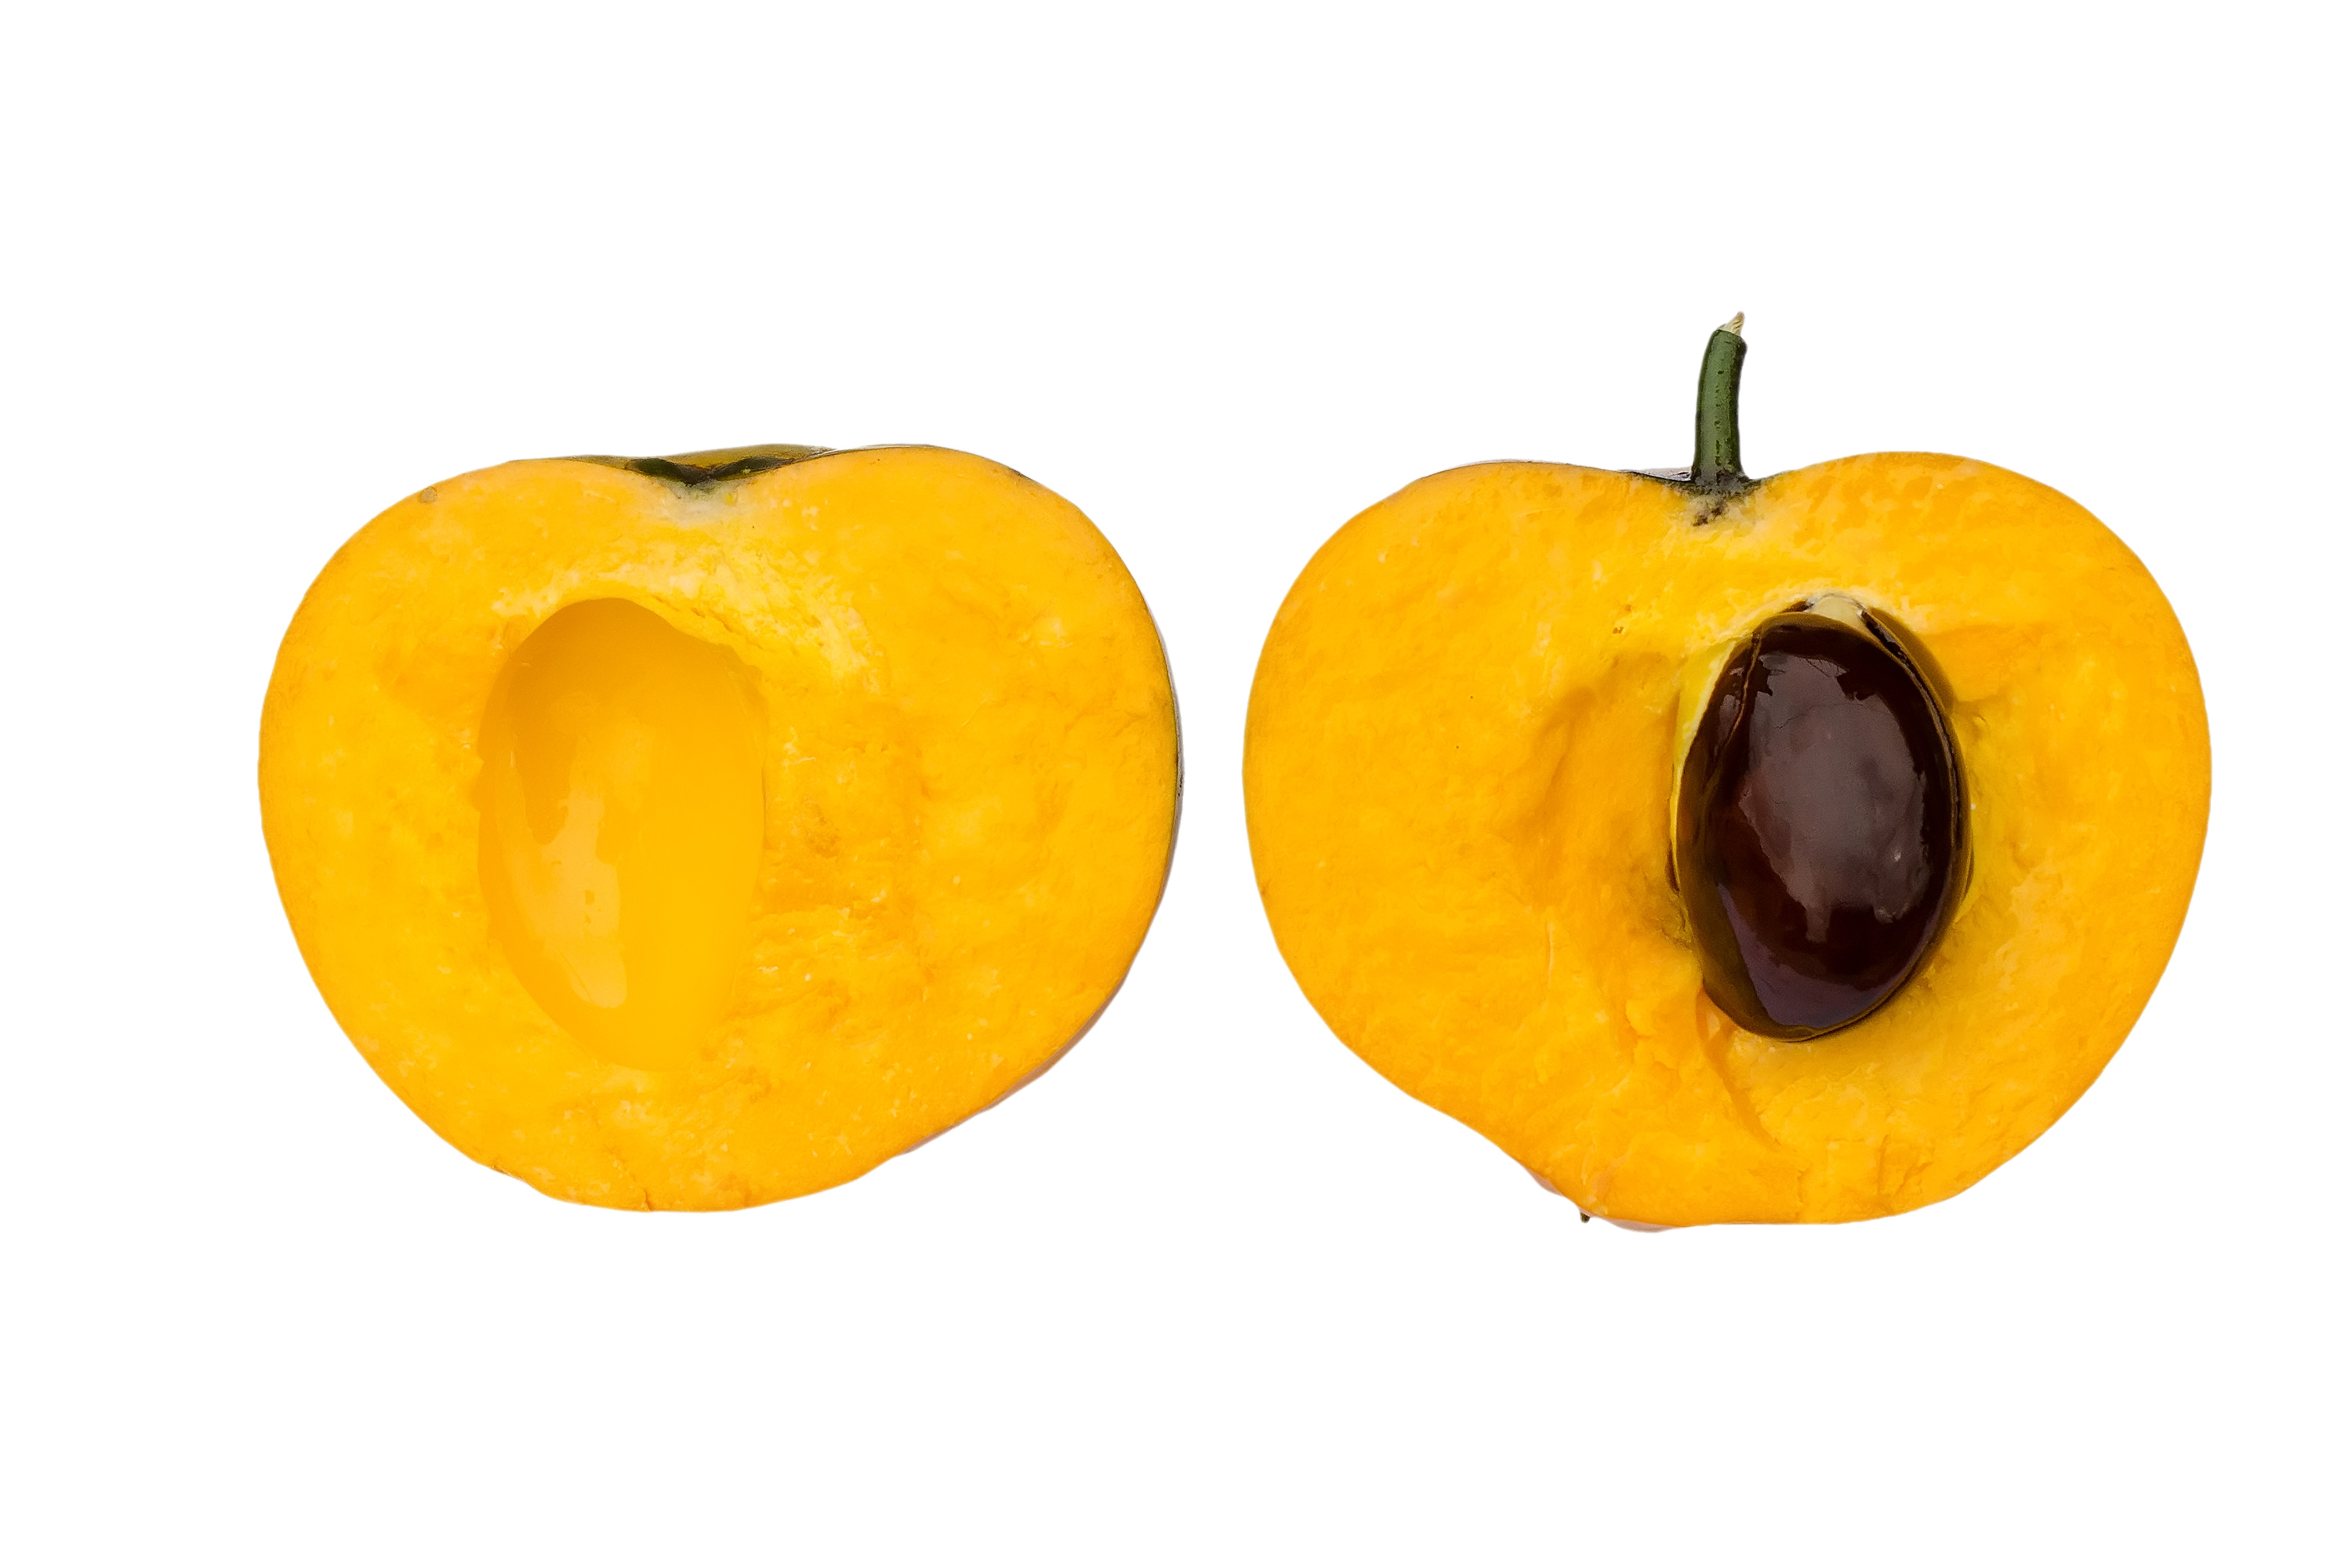 wikipedia:featured pictures/plants/fruits - wikipedia